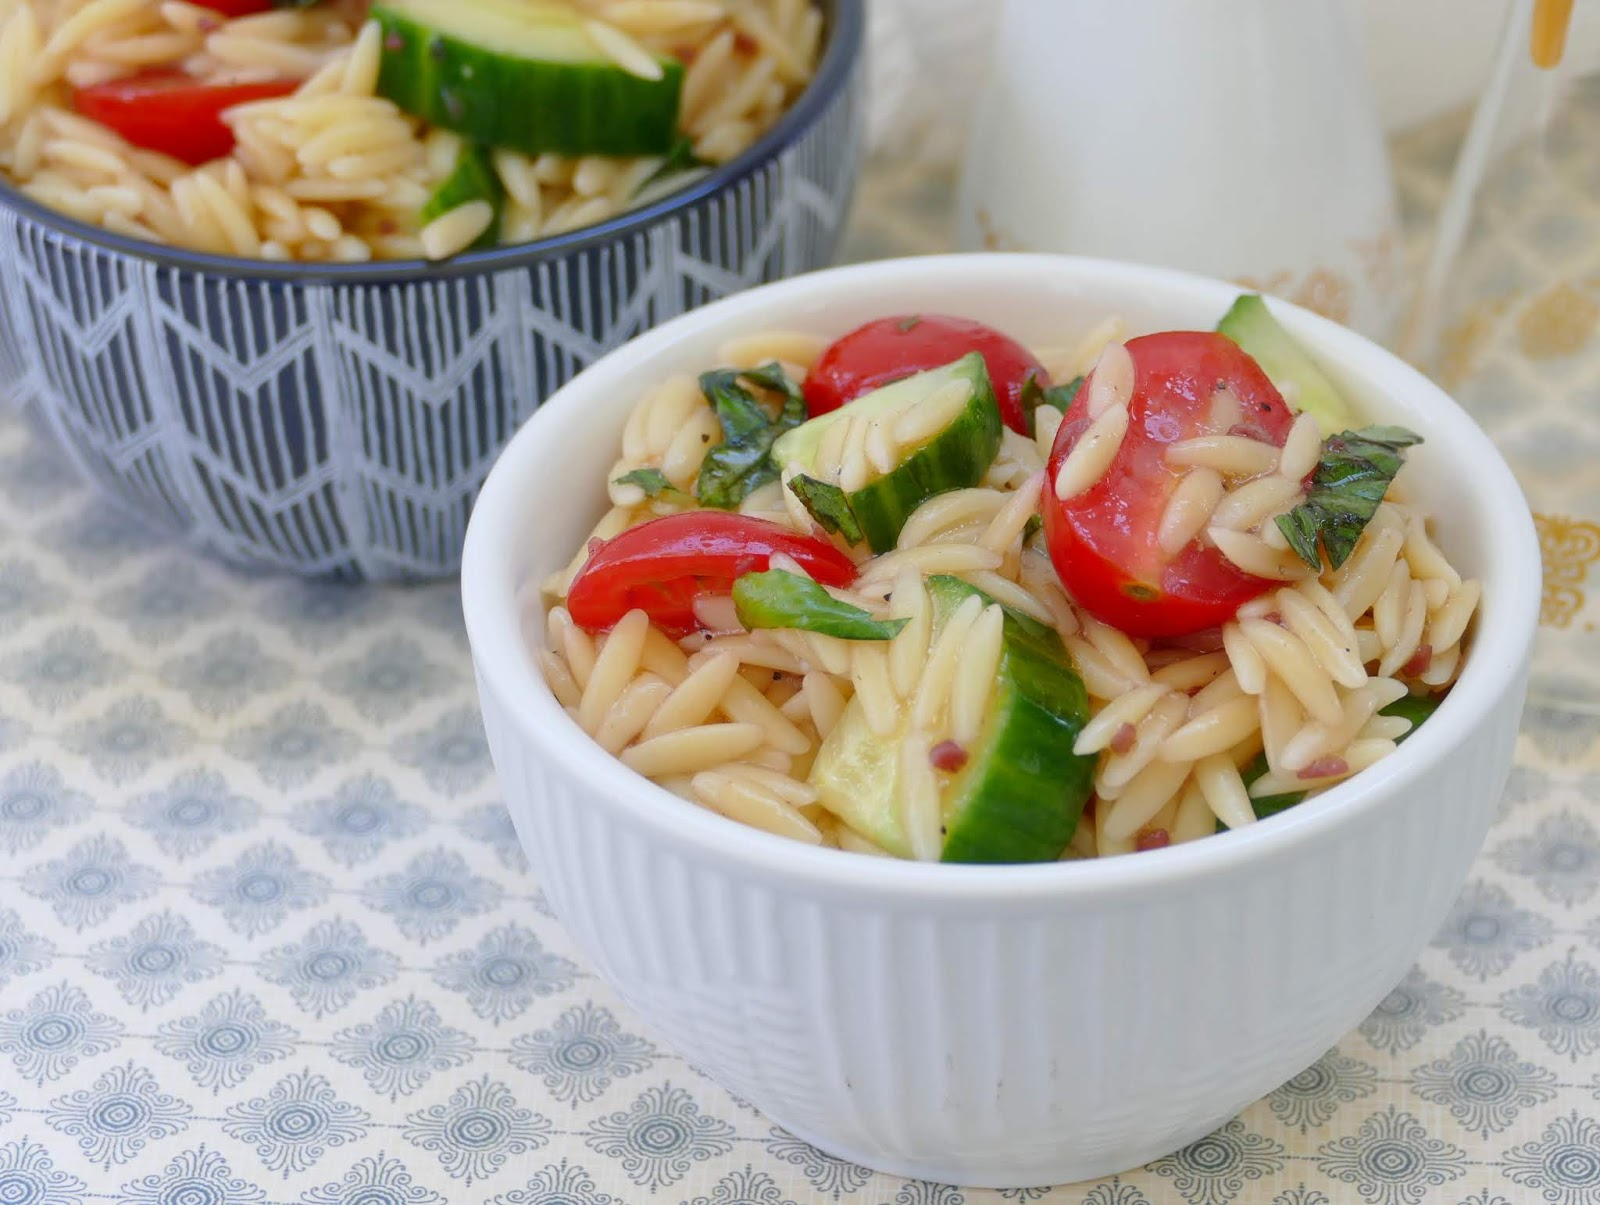 This simple spring or summer orzo pasta salad couldn't be any easier! The tomatoes, basil and cucumber combined together adds the perfect taste and texture to the orzo, and the vinaigrette dressing is the perfect finishing touch. Great side for lunch, dinner, any picnic, BBQ or potluck!